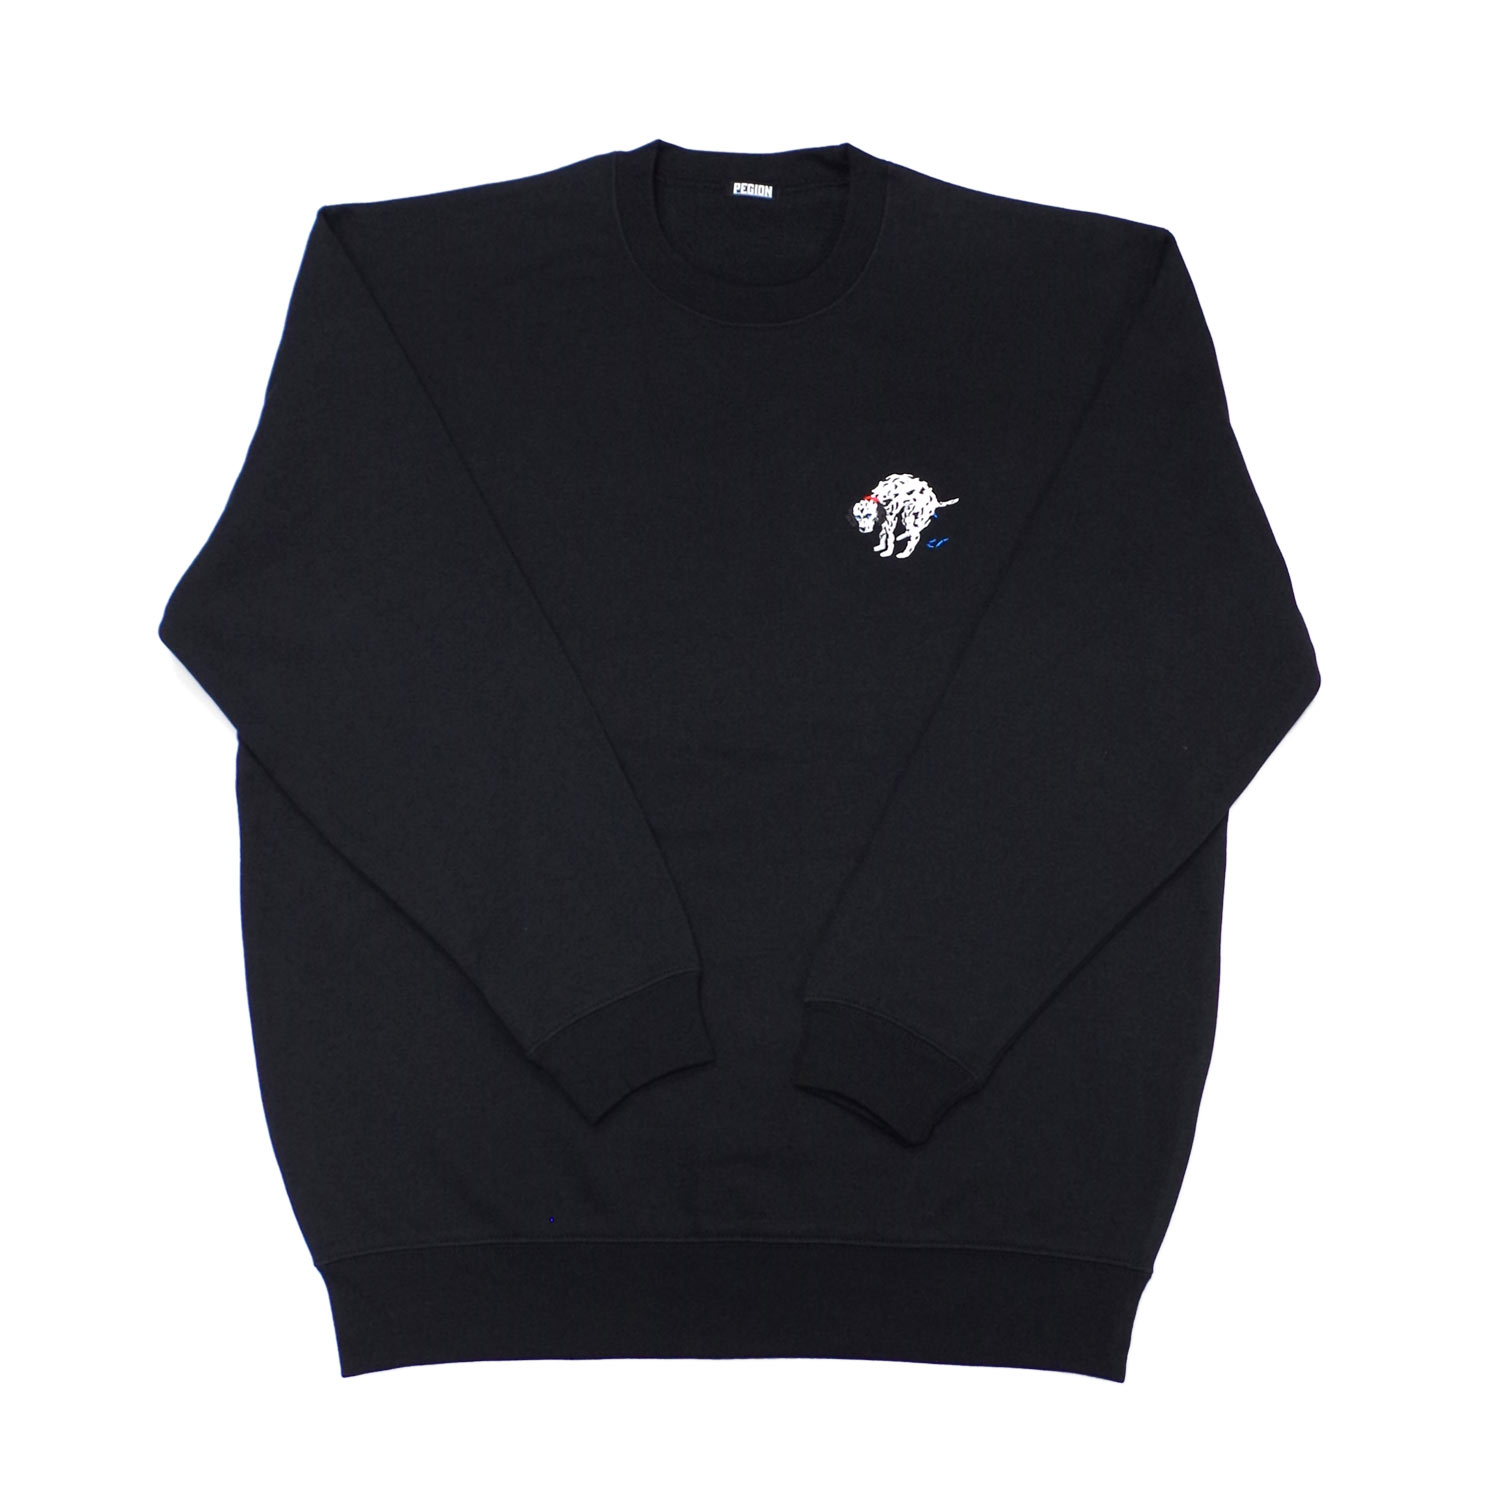 DALMATIAN ROUND NECK SWEAT TOP BLACK